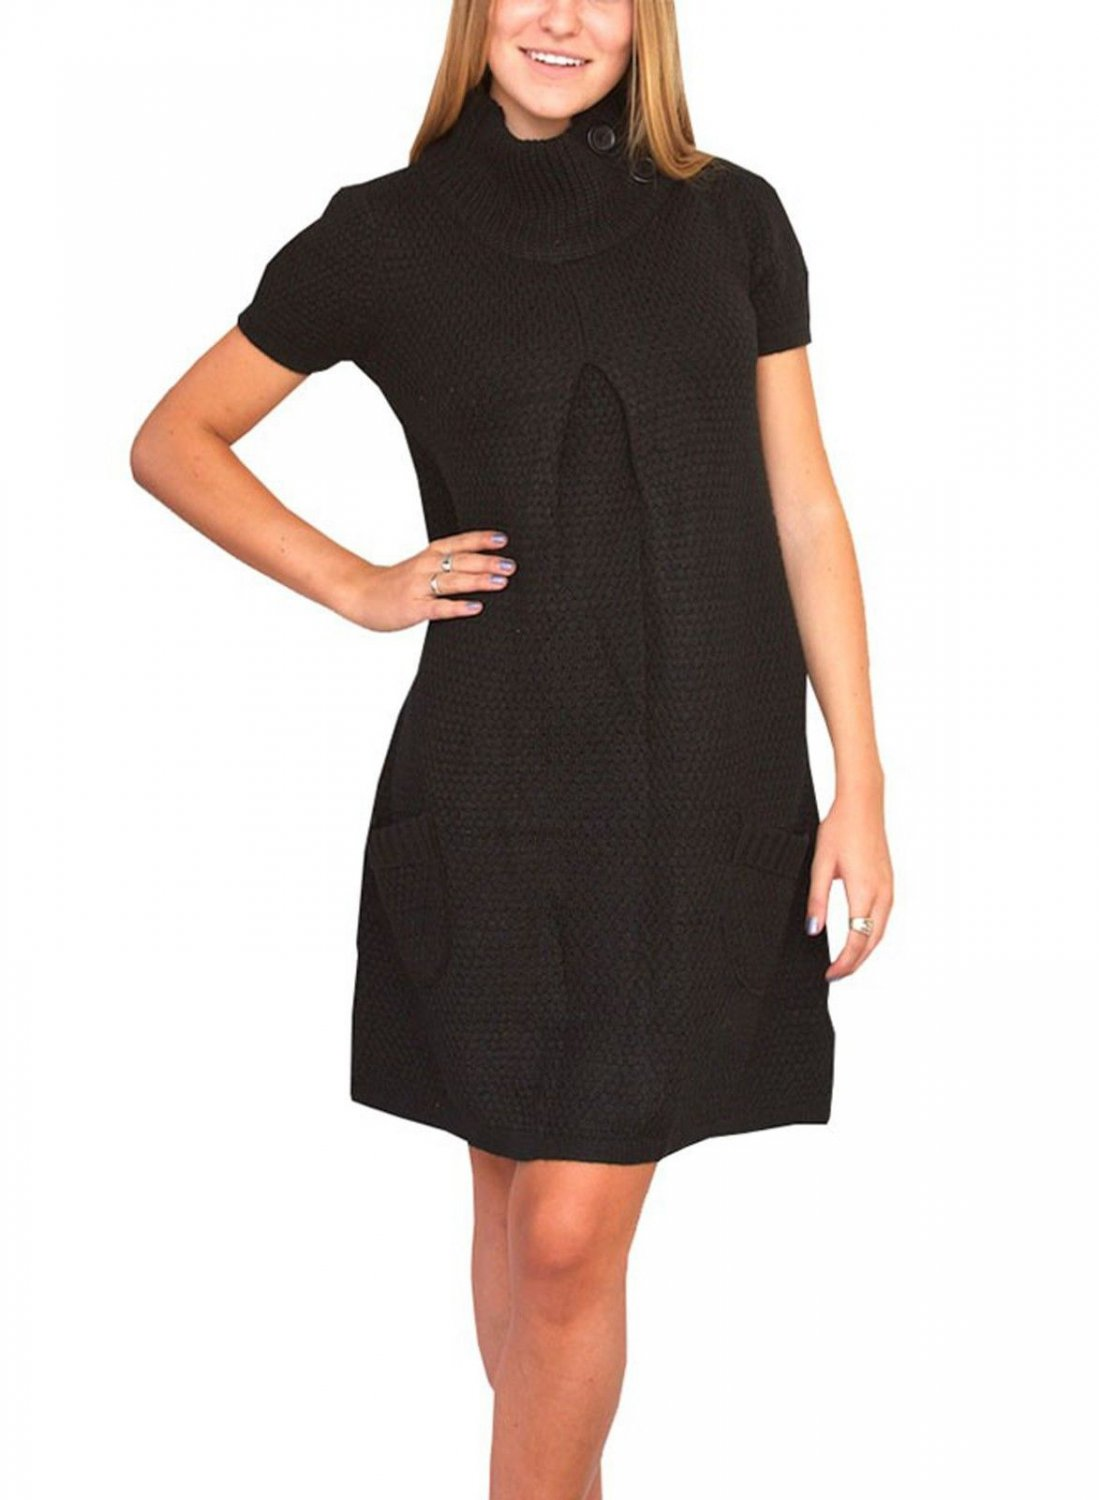 Love 2 Be Free Juniors S Black Sweater Dress with Funnel Neck and Pockets